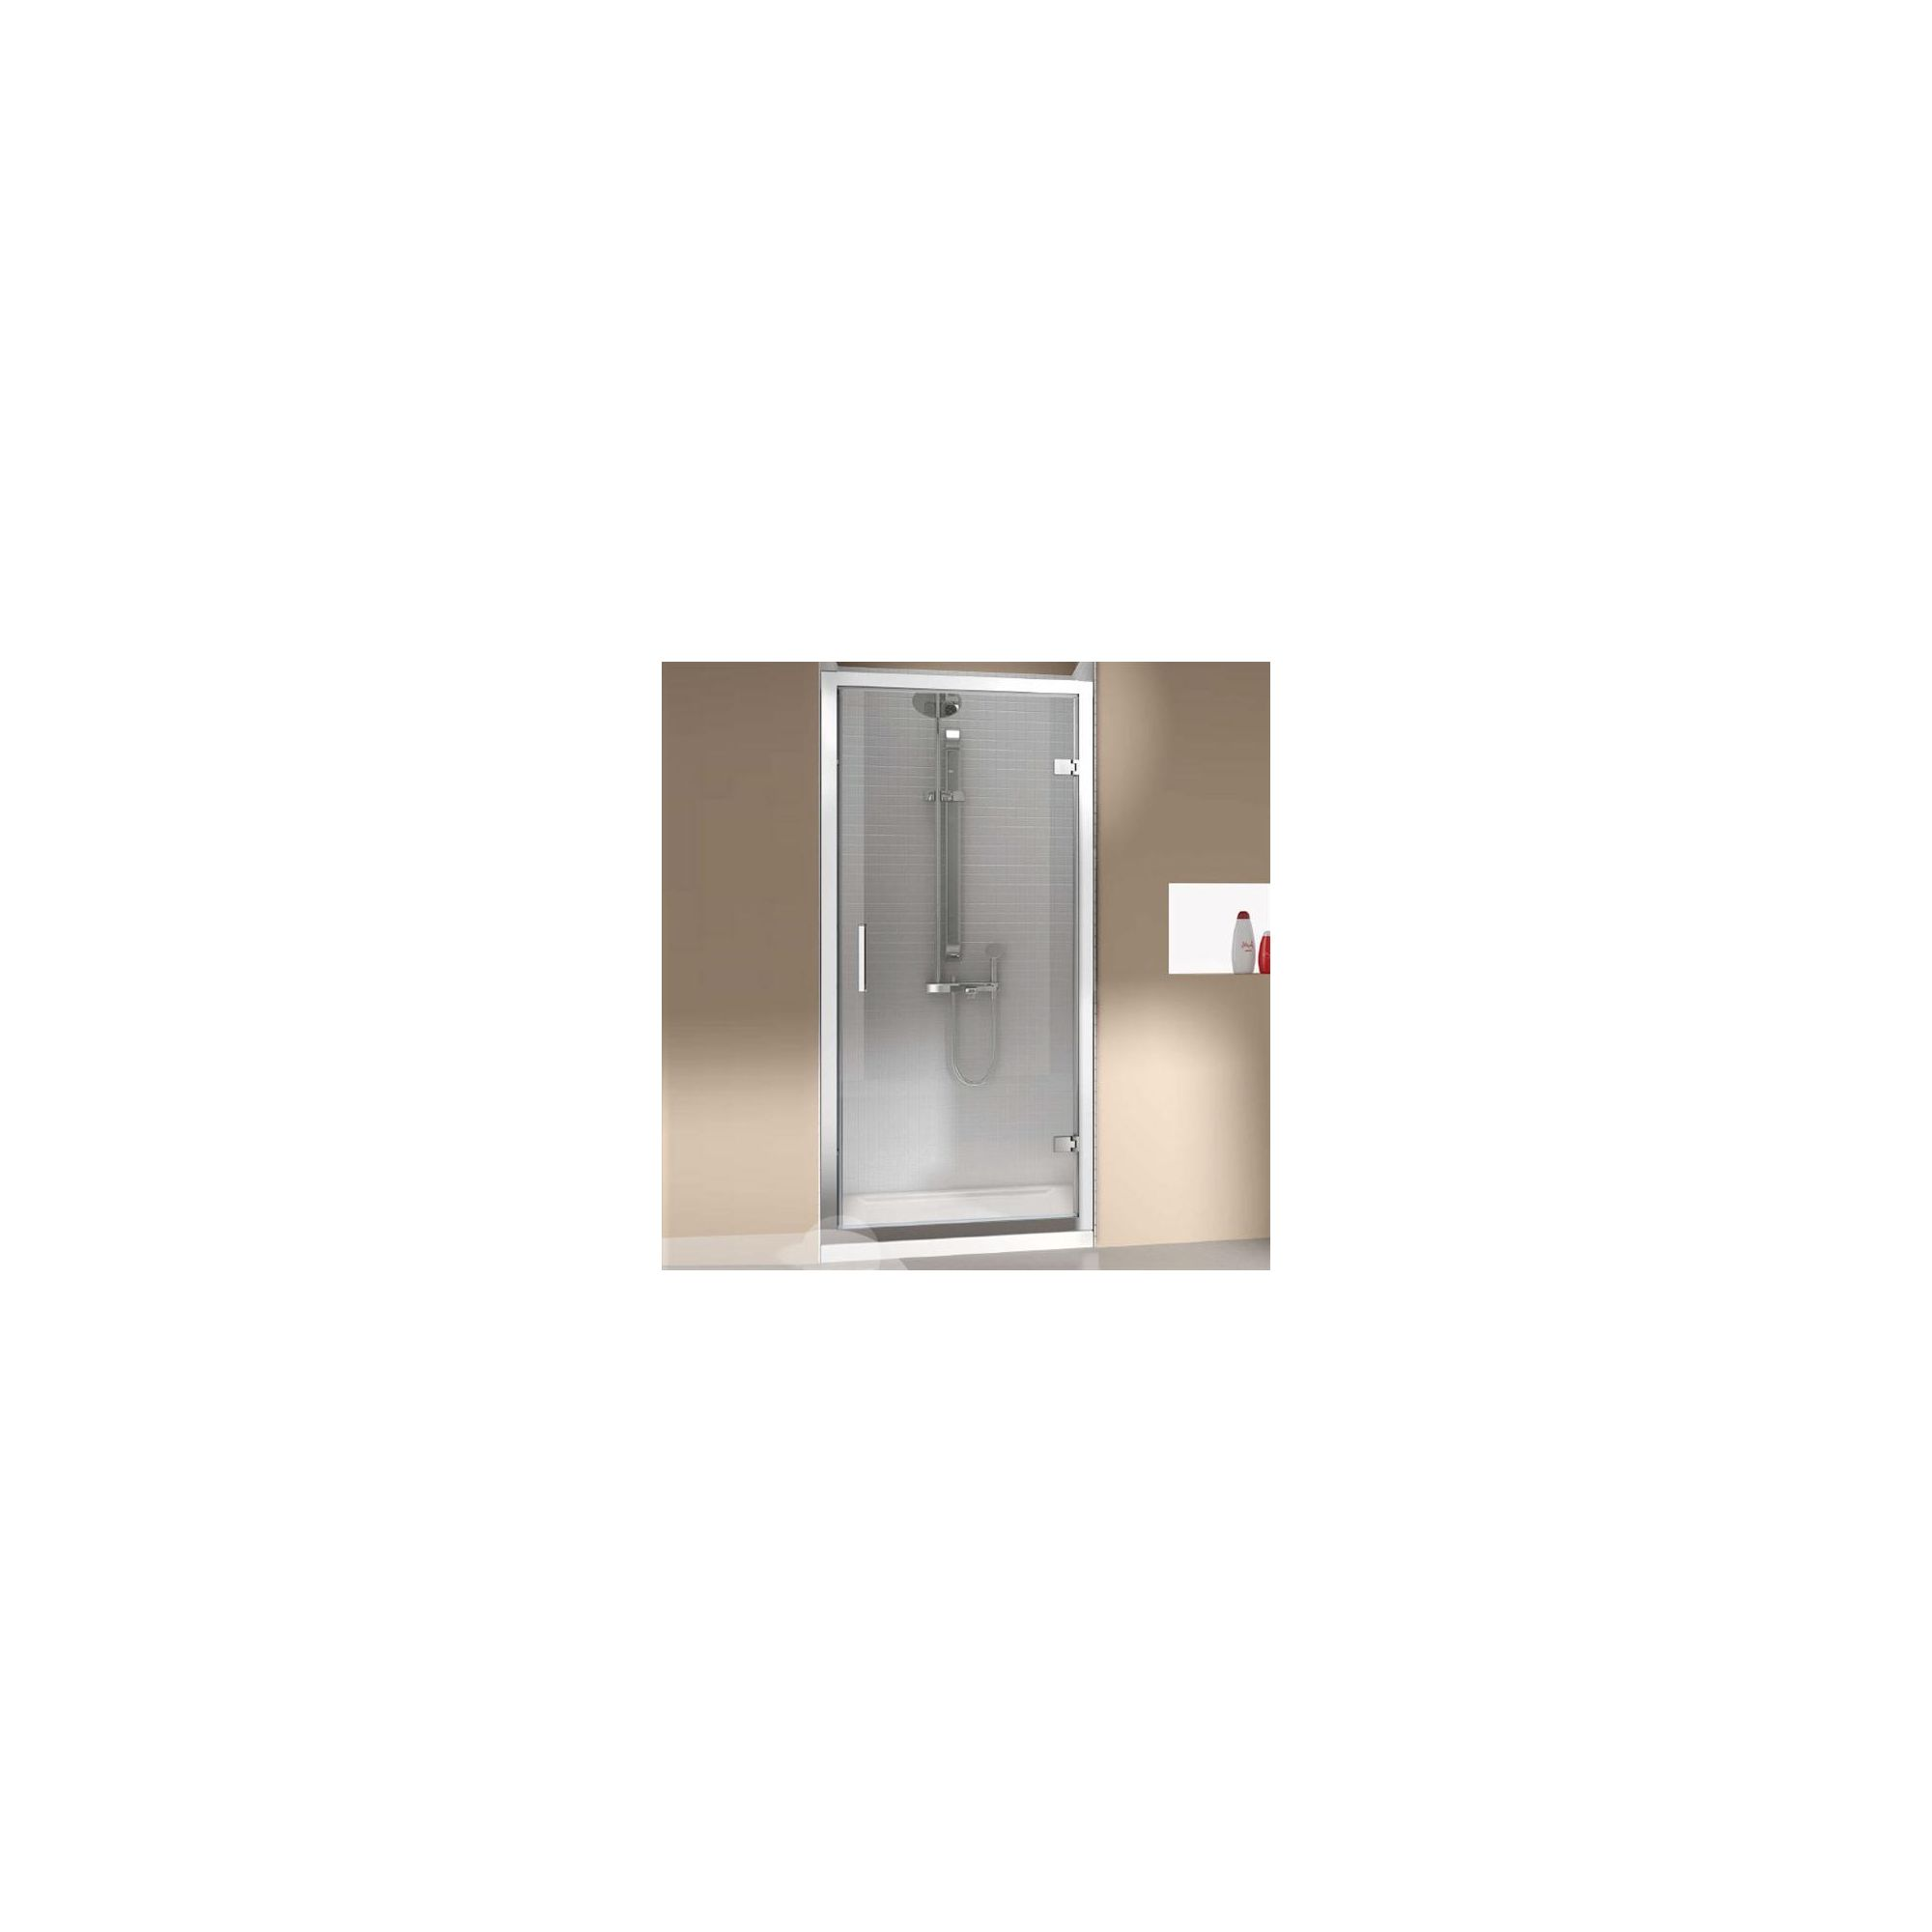 Merlyn Vivid Eight Hinged Shower Door Enclosure 800mm x 800mm (including Merlyte Tray) at Tesco Direct